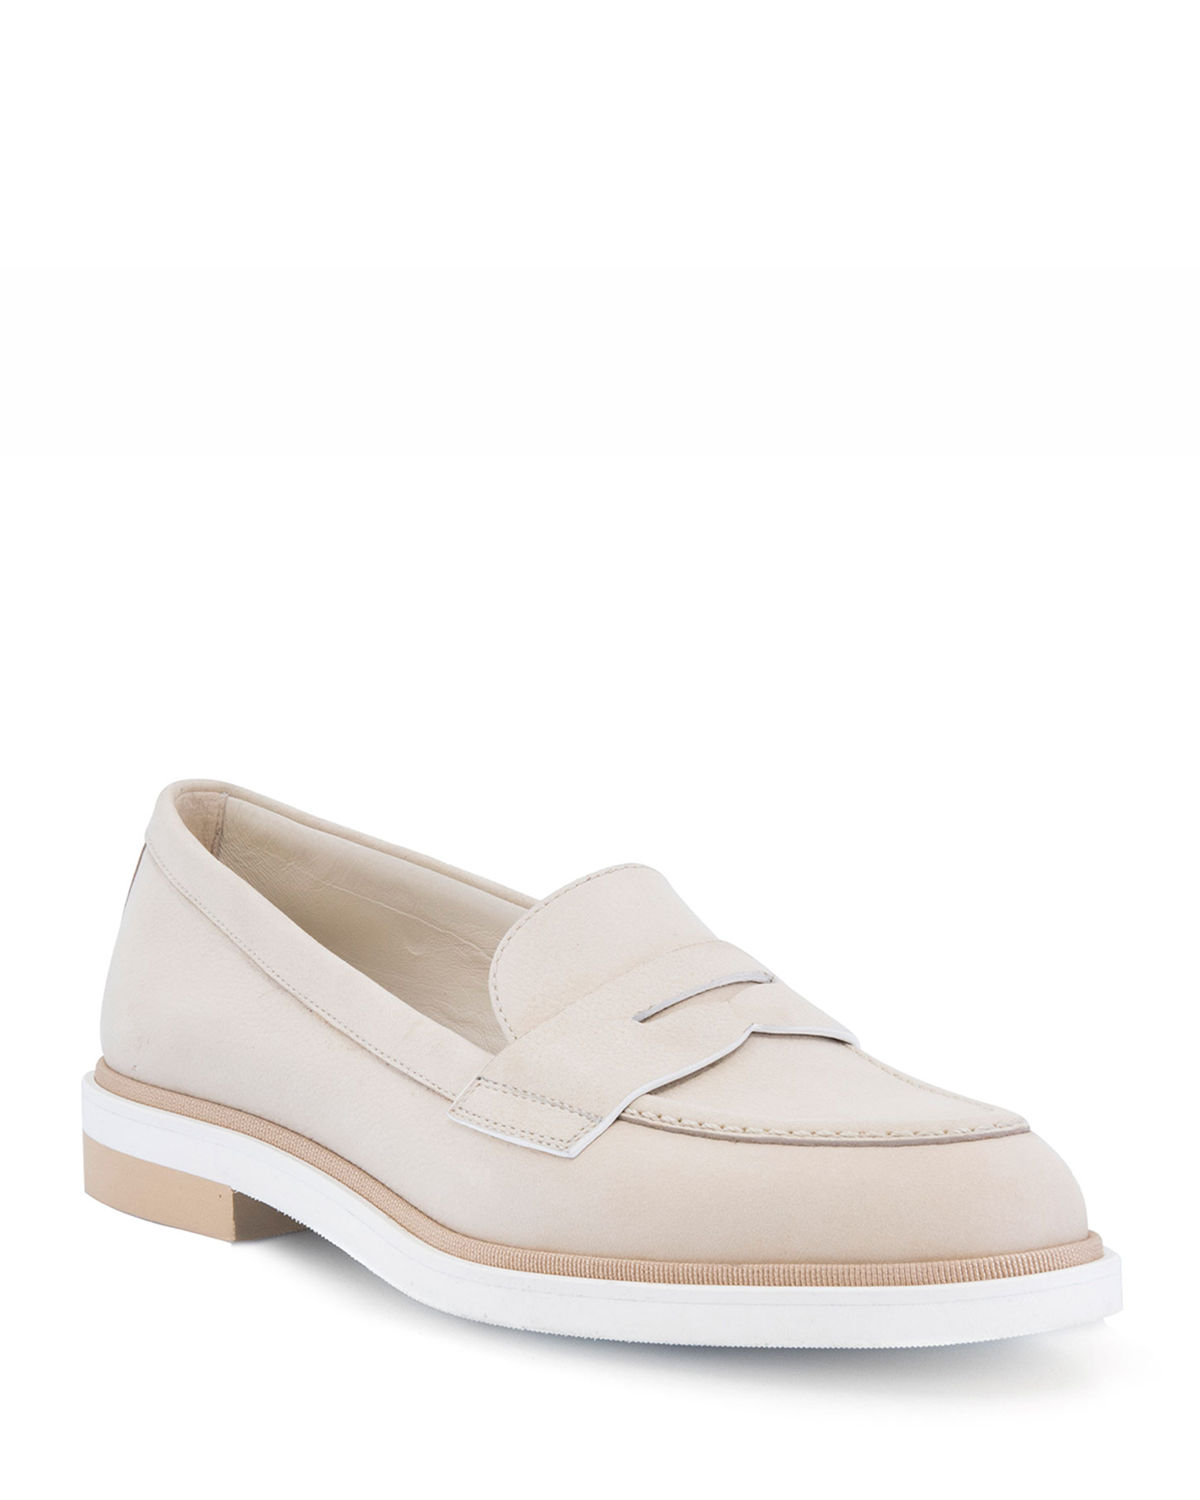 Nubuck Leather Penny Loafers